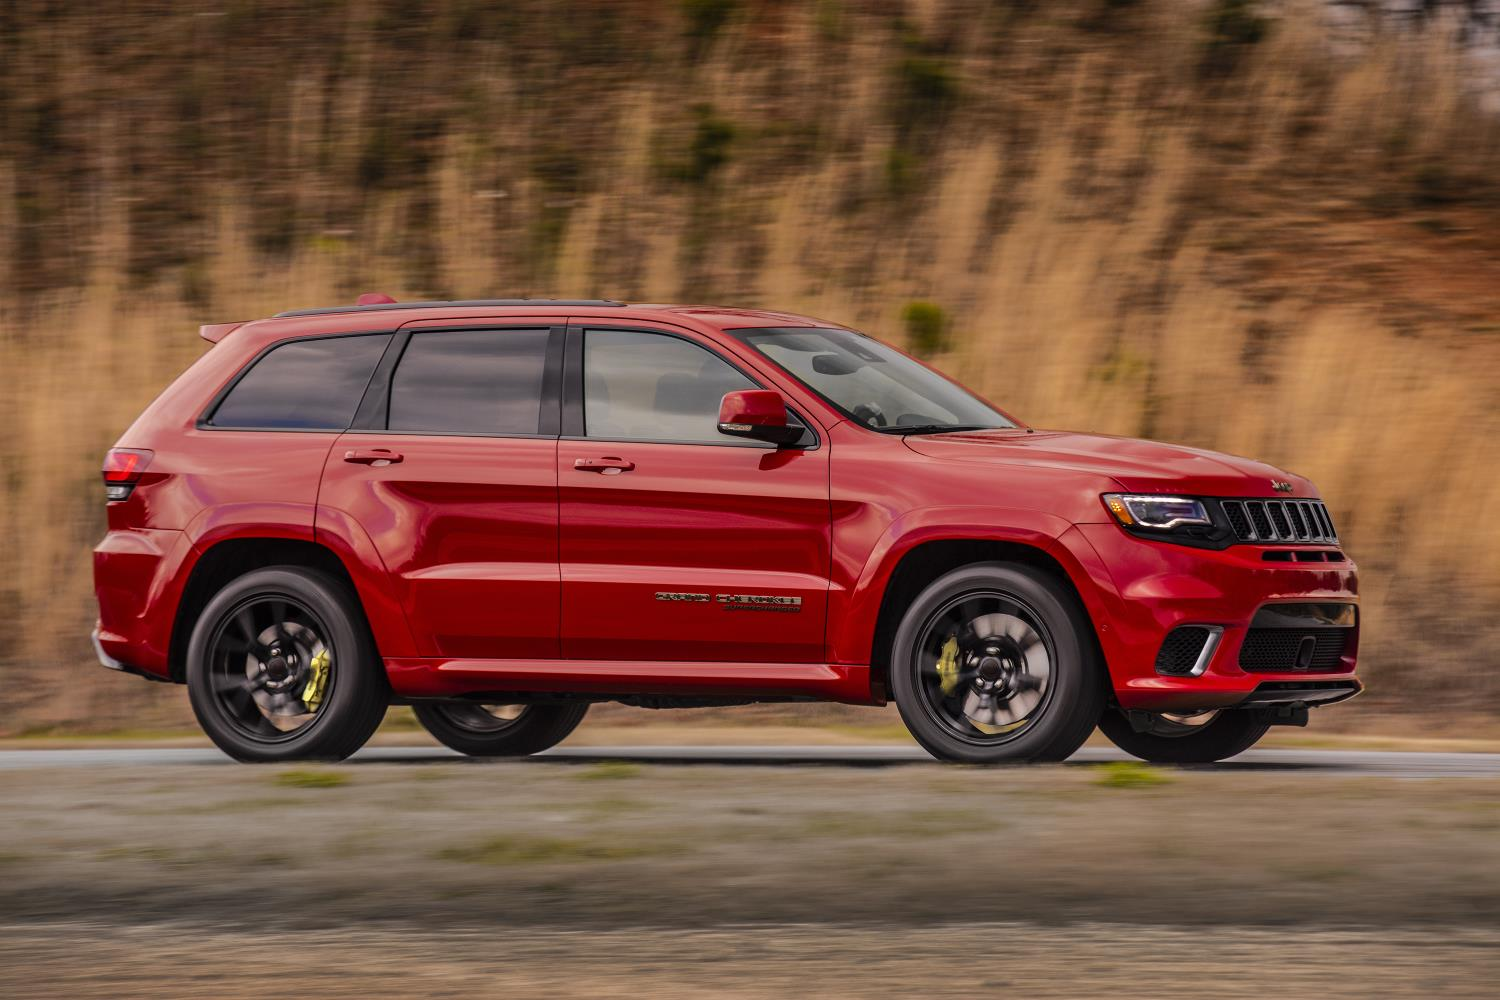 Jeep Grand Cherokee, one of Jeep's top selling vehicles in calendar year 2017